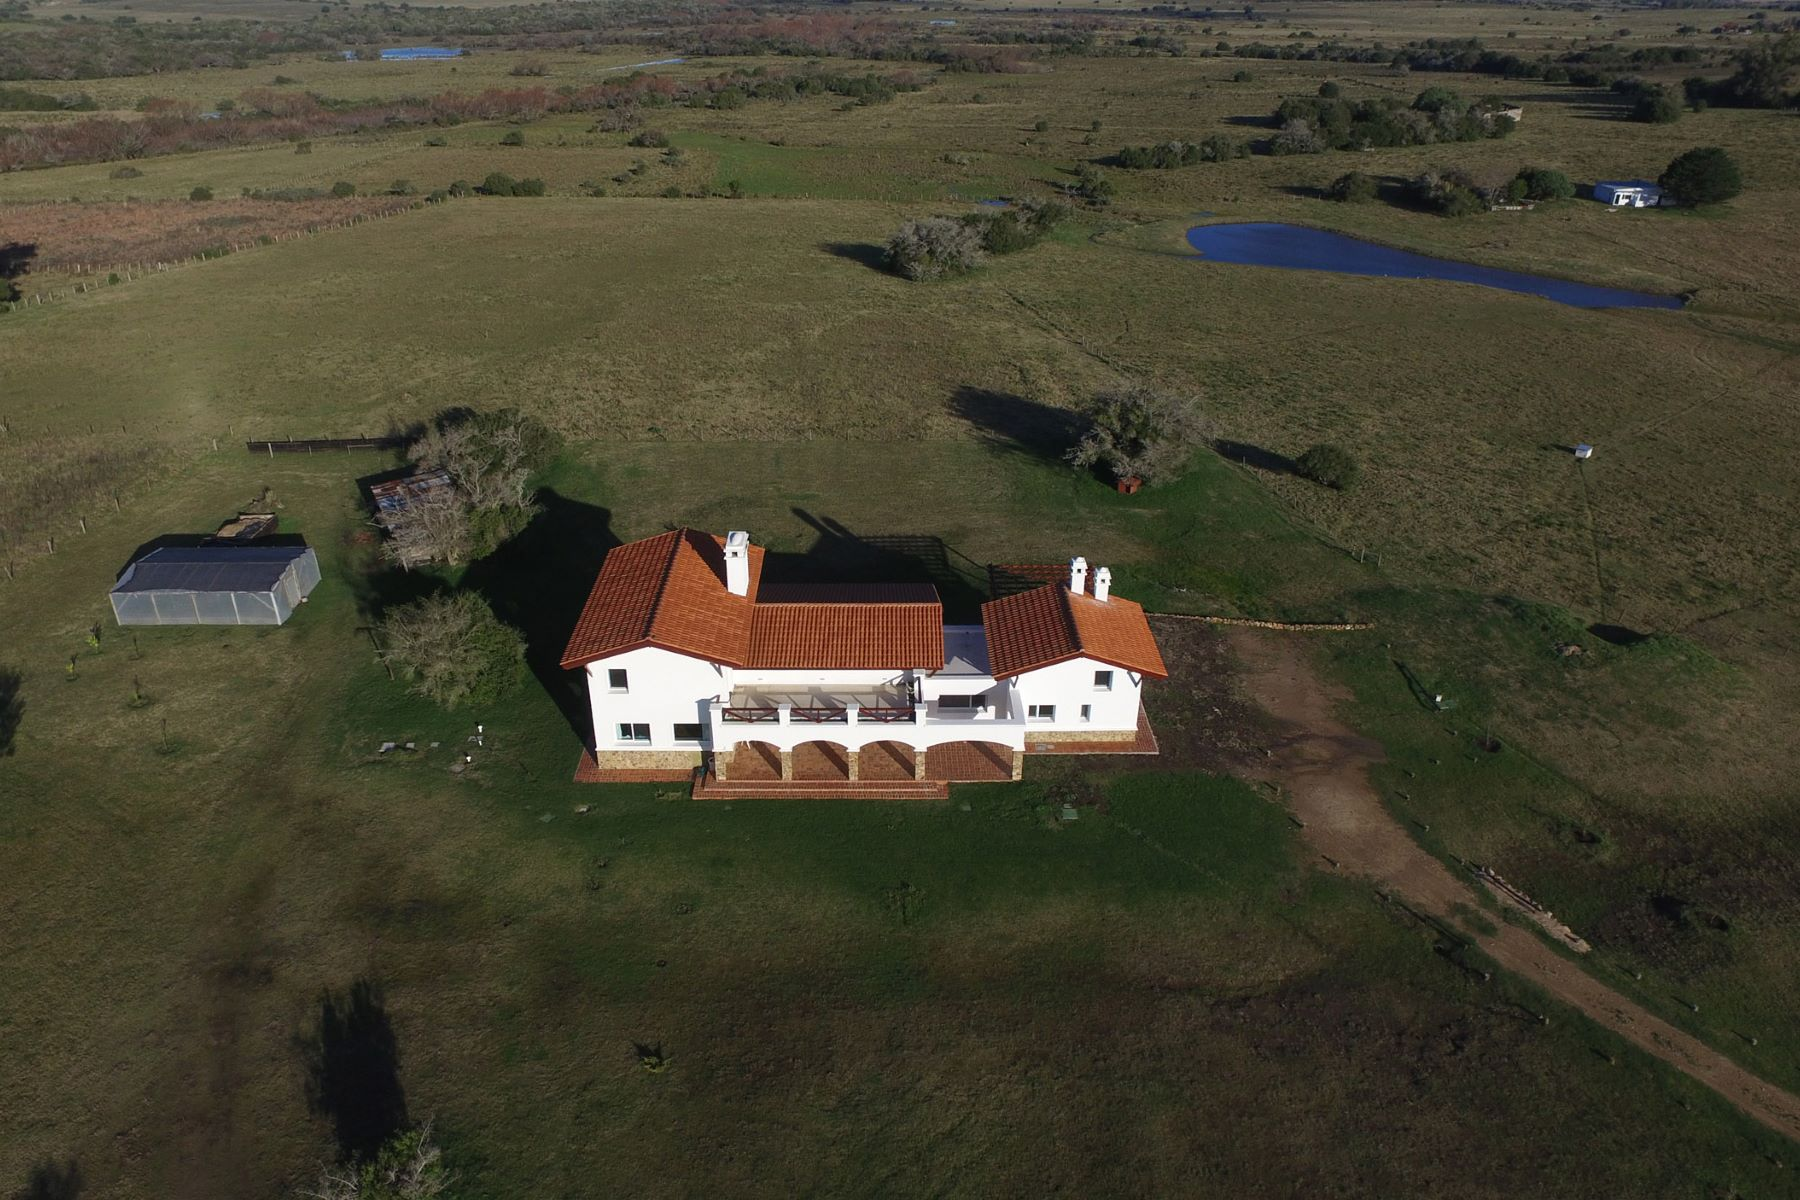 Single Family Home for Sale at La India Pueblo Eden, Maldonado, Uruguay